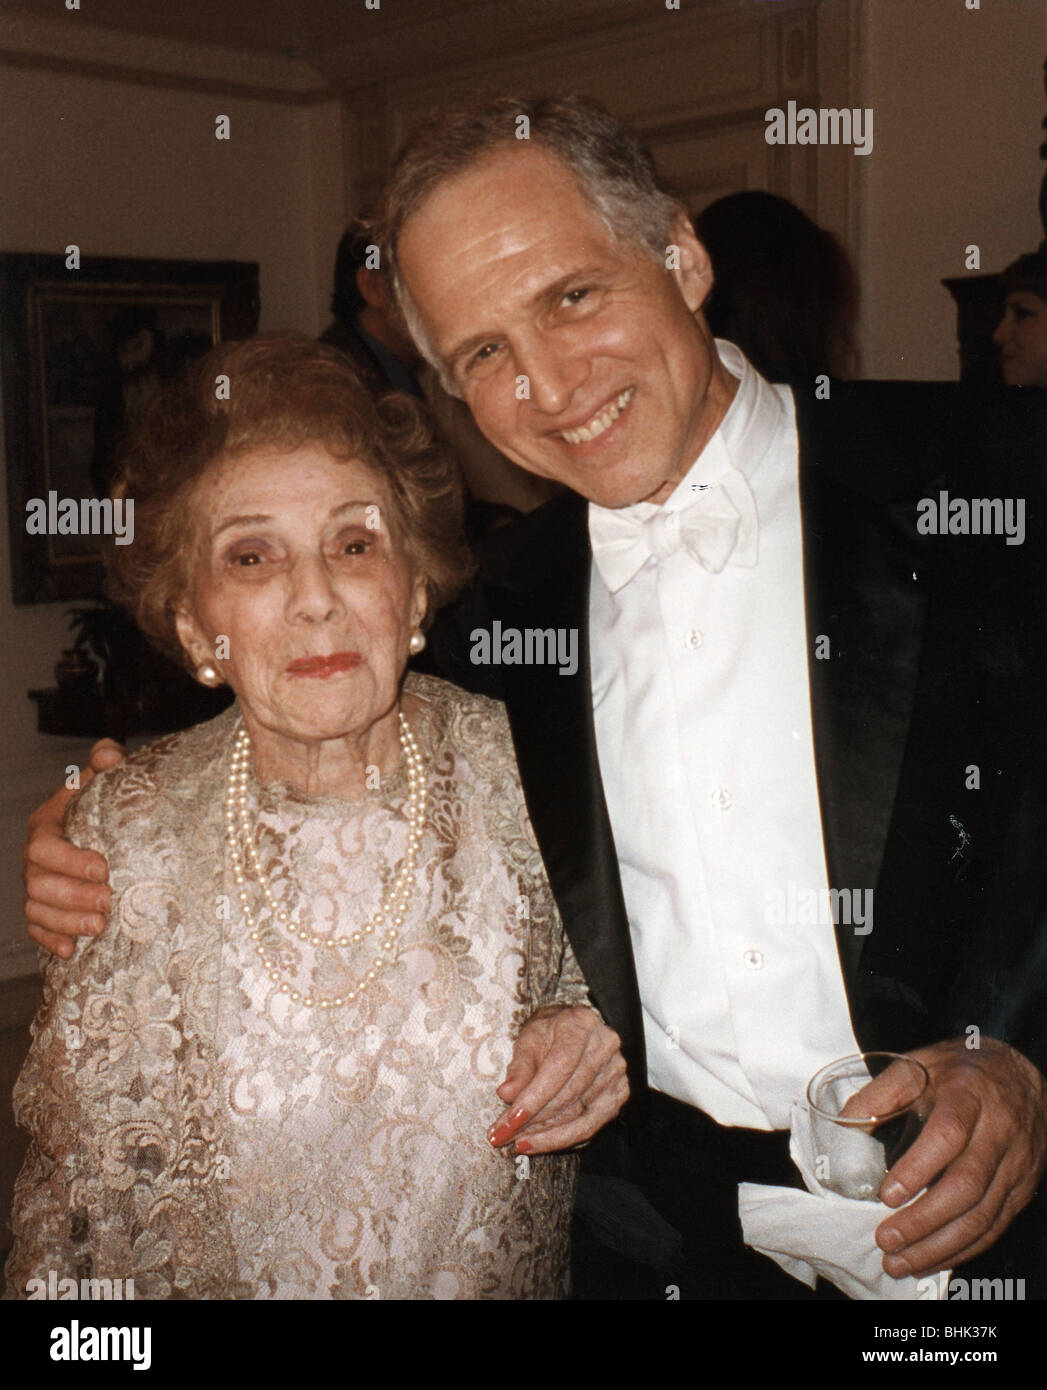 Frances Gershwin (sister of George Gershwin) and her son, Leopold Godowsky III, New York, July 1998. Artist: George - Stock Image